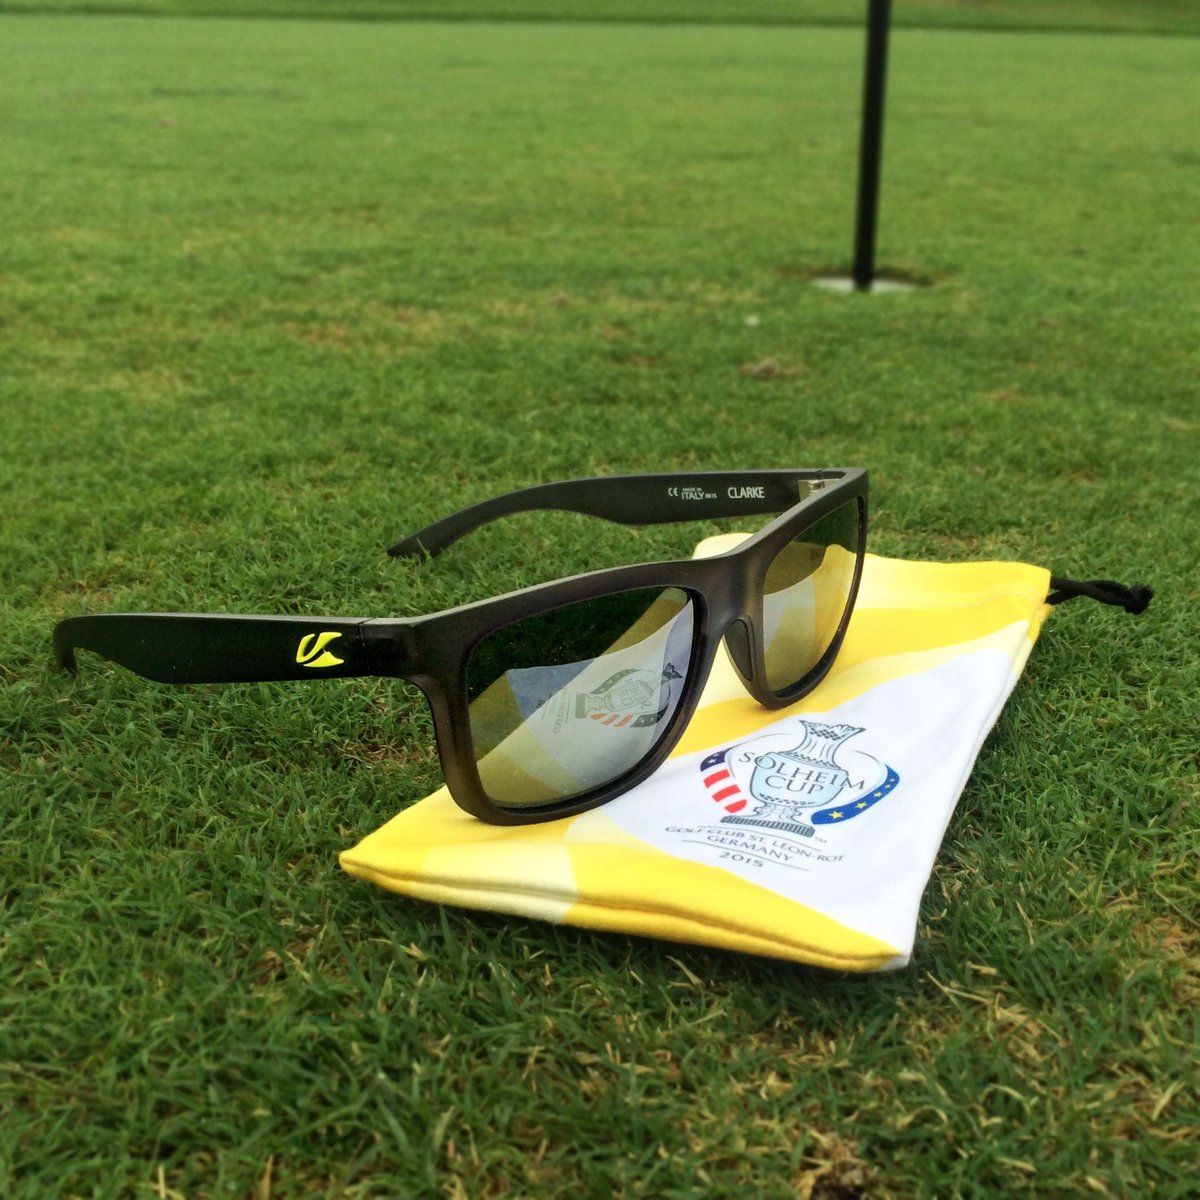 Win Kaenon sunglasses, seen on the @SolheimCupEuro team. Just RT & Follow @Kaenon, contest starts Sun @SolheimCup2015 http://t.co/uquSaupanB